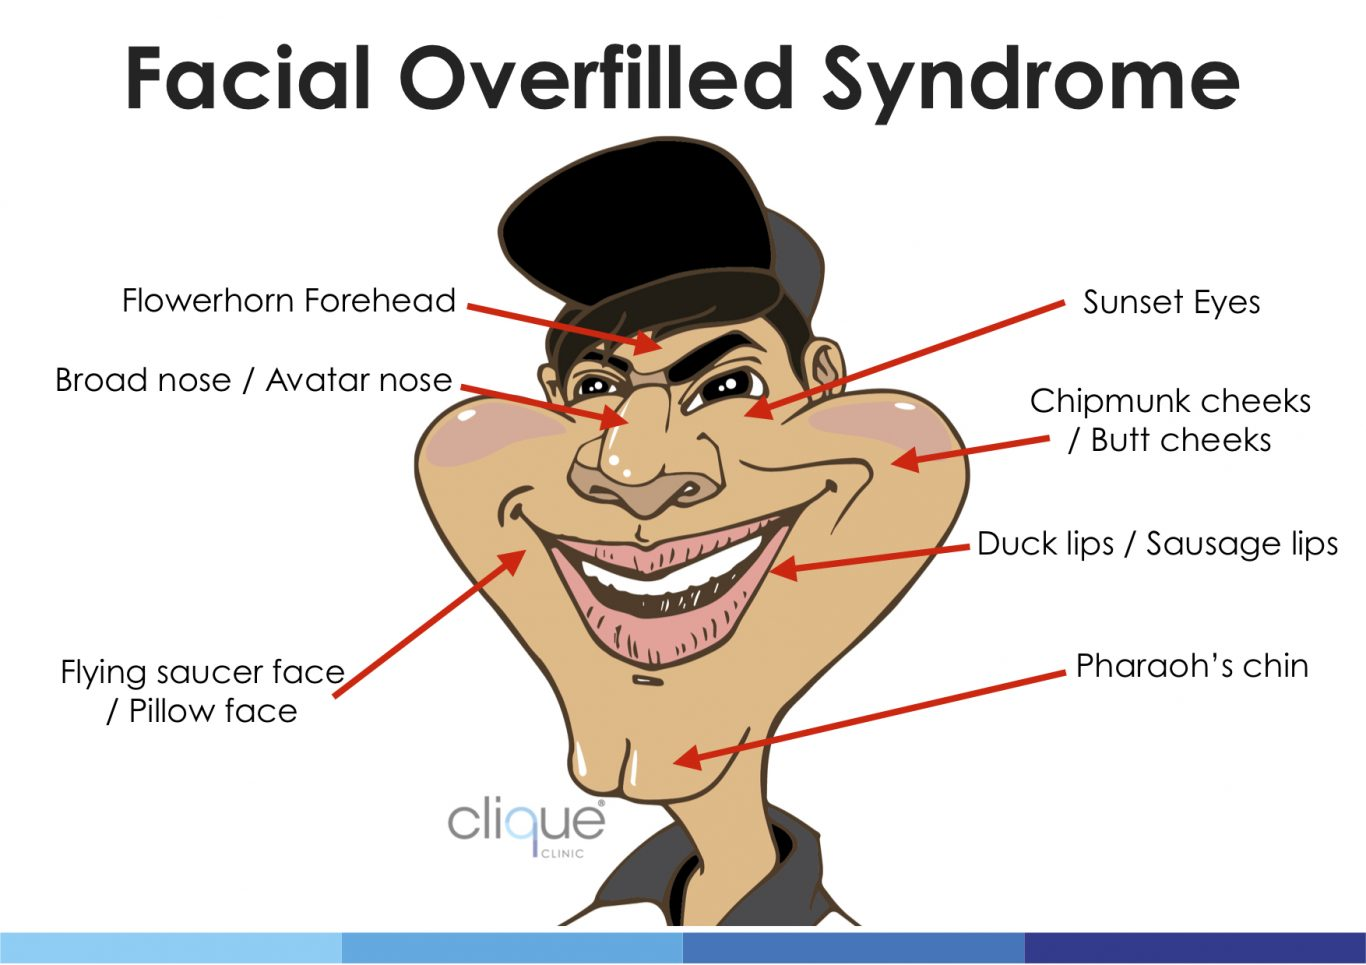 How to avoid Facial Overfilled Syndrome with fillers? 4 things you should know. - Facial Overfilled Syndrome Man 1